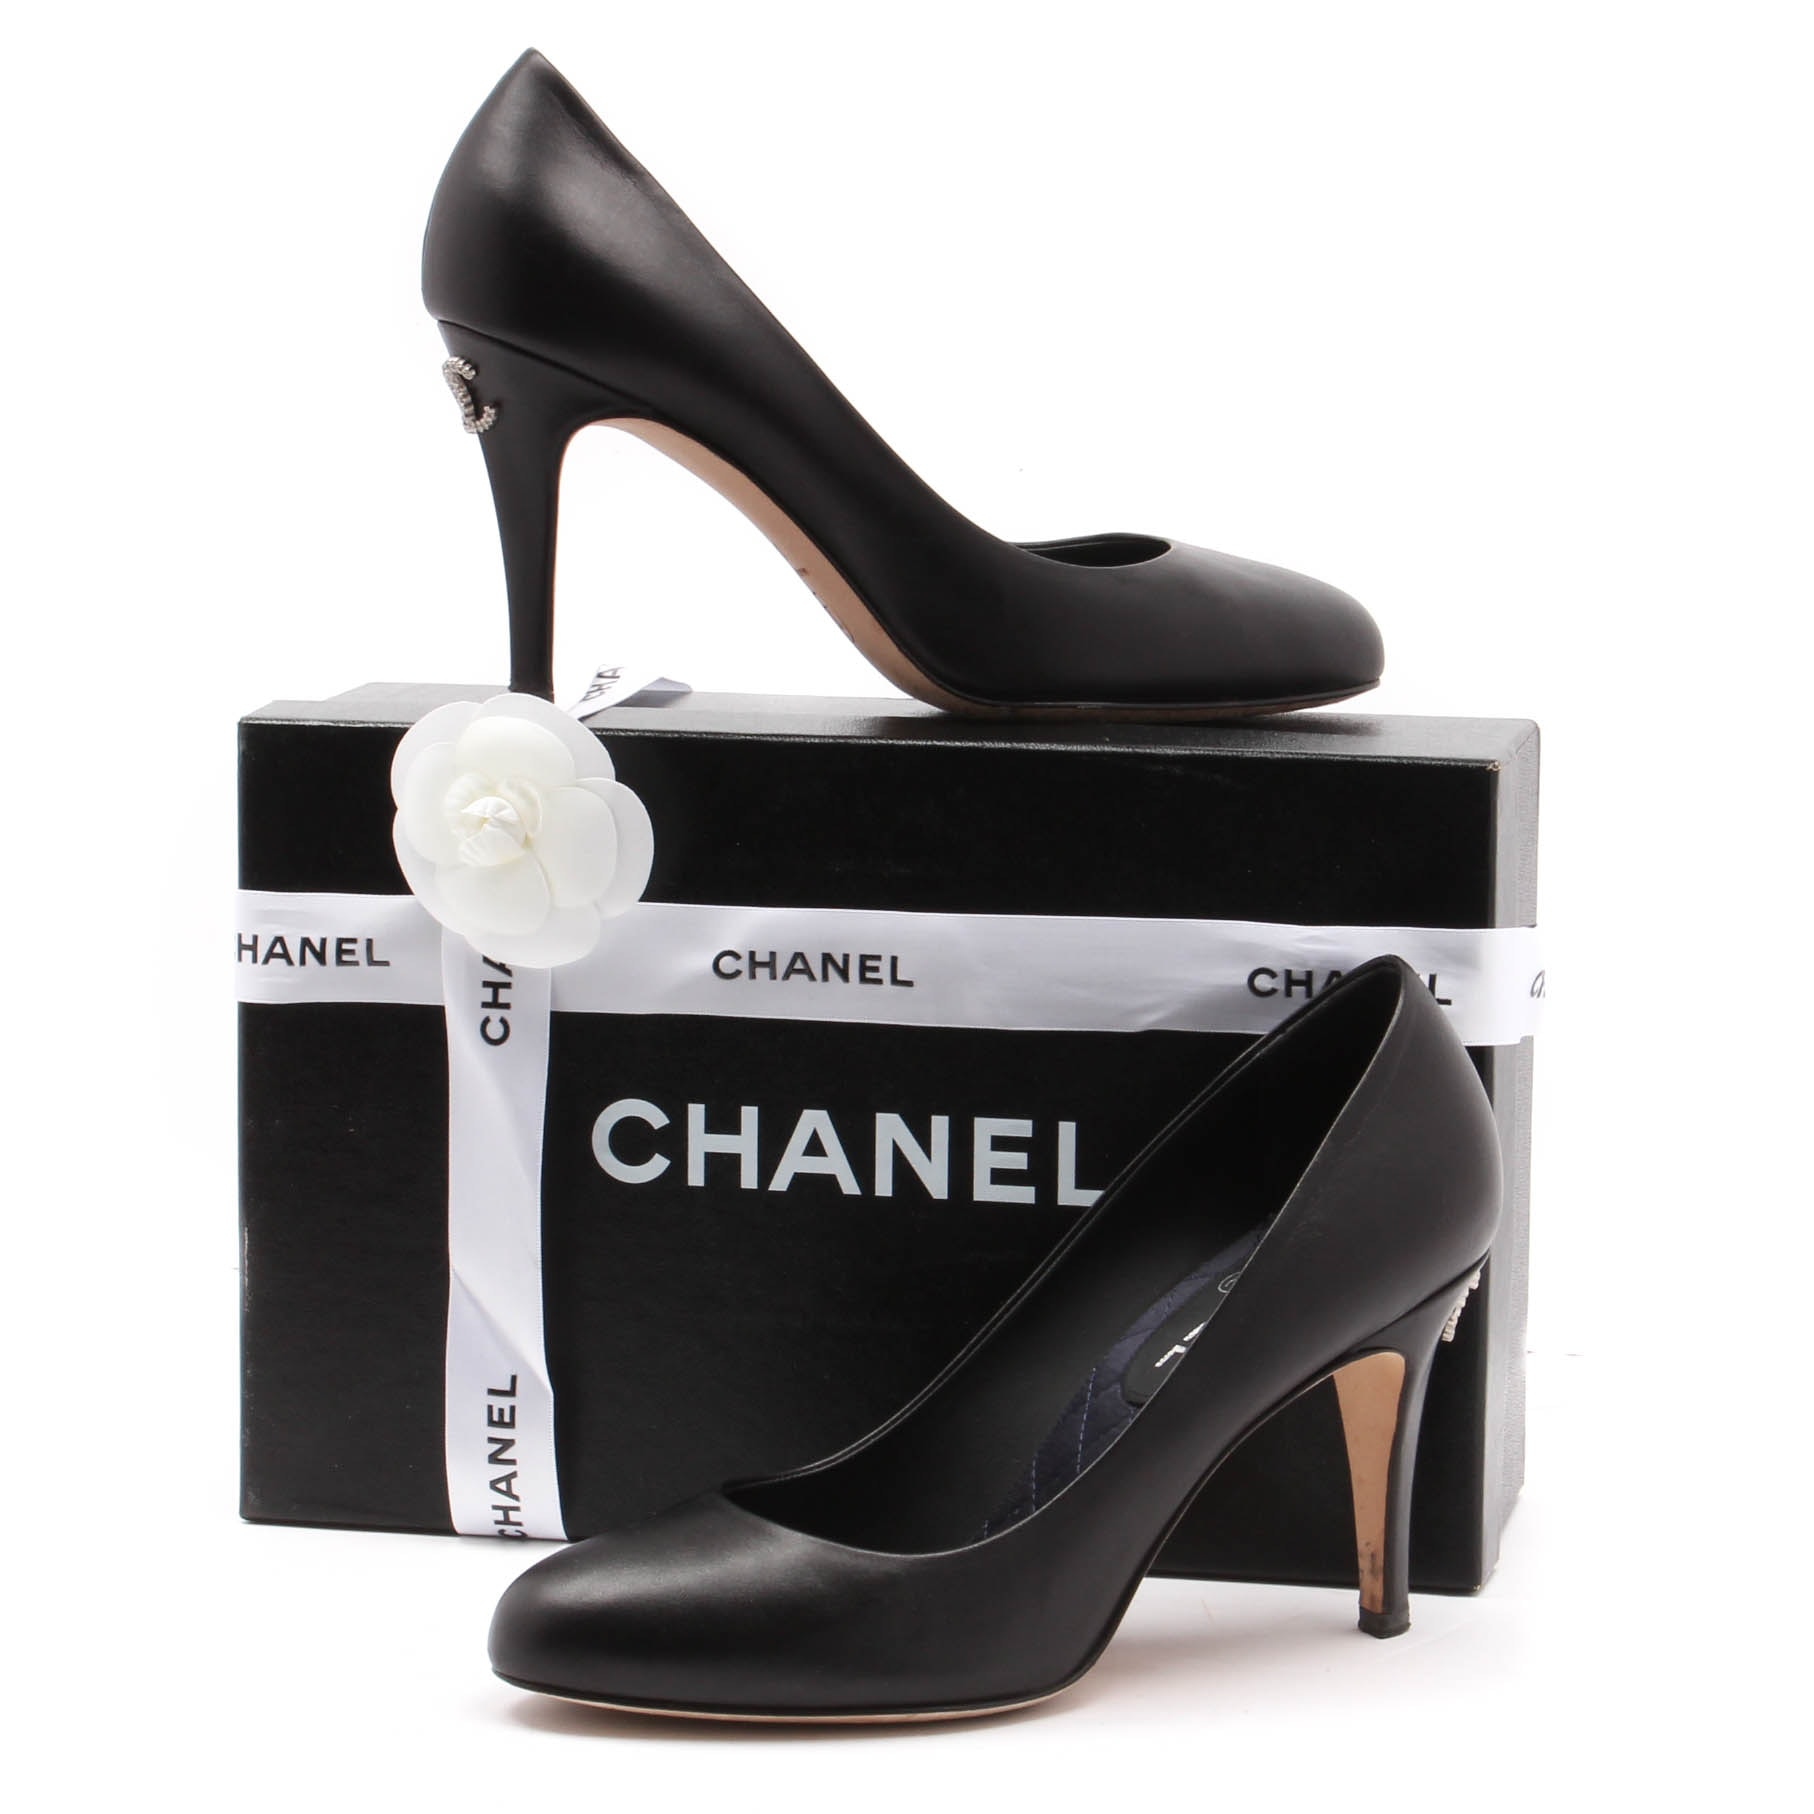 Chanel Black Leather Pumps with Rhinestone Logo Heel